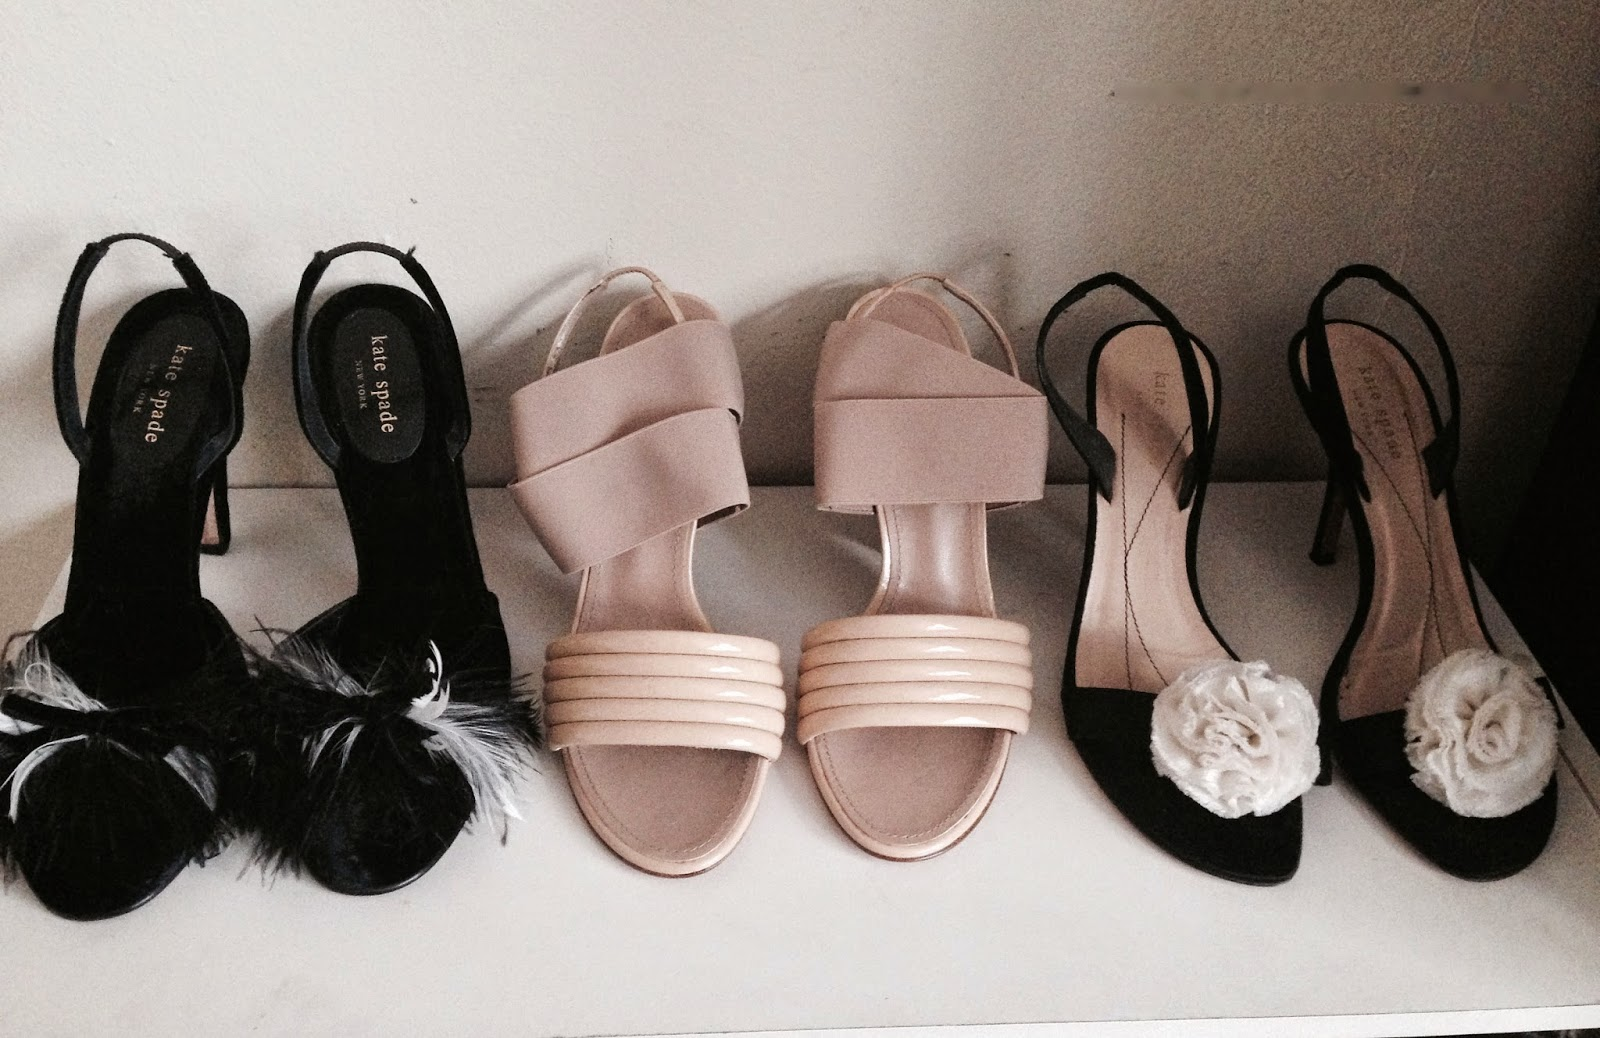 desinger sheos, kate spade suede shoes, proenza schouler shoes